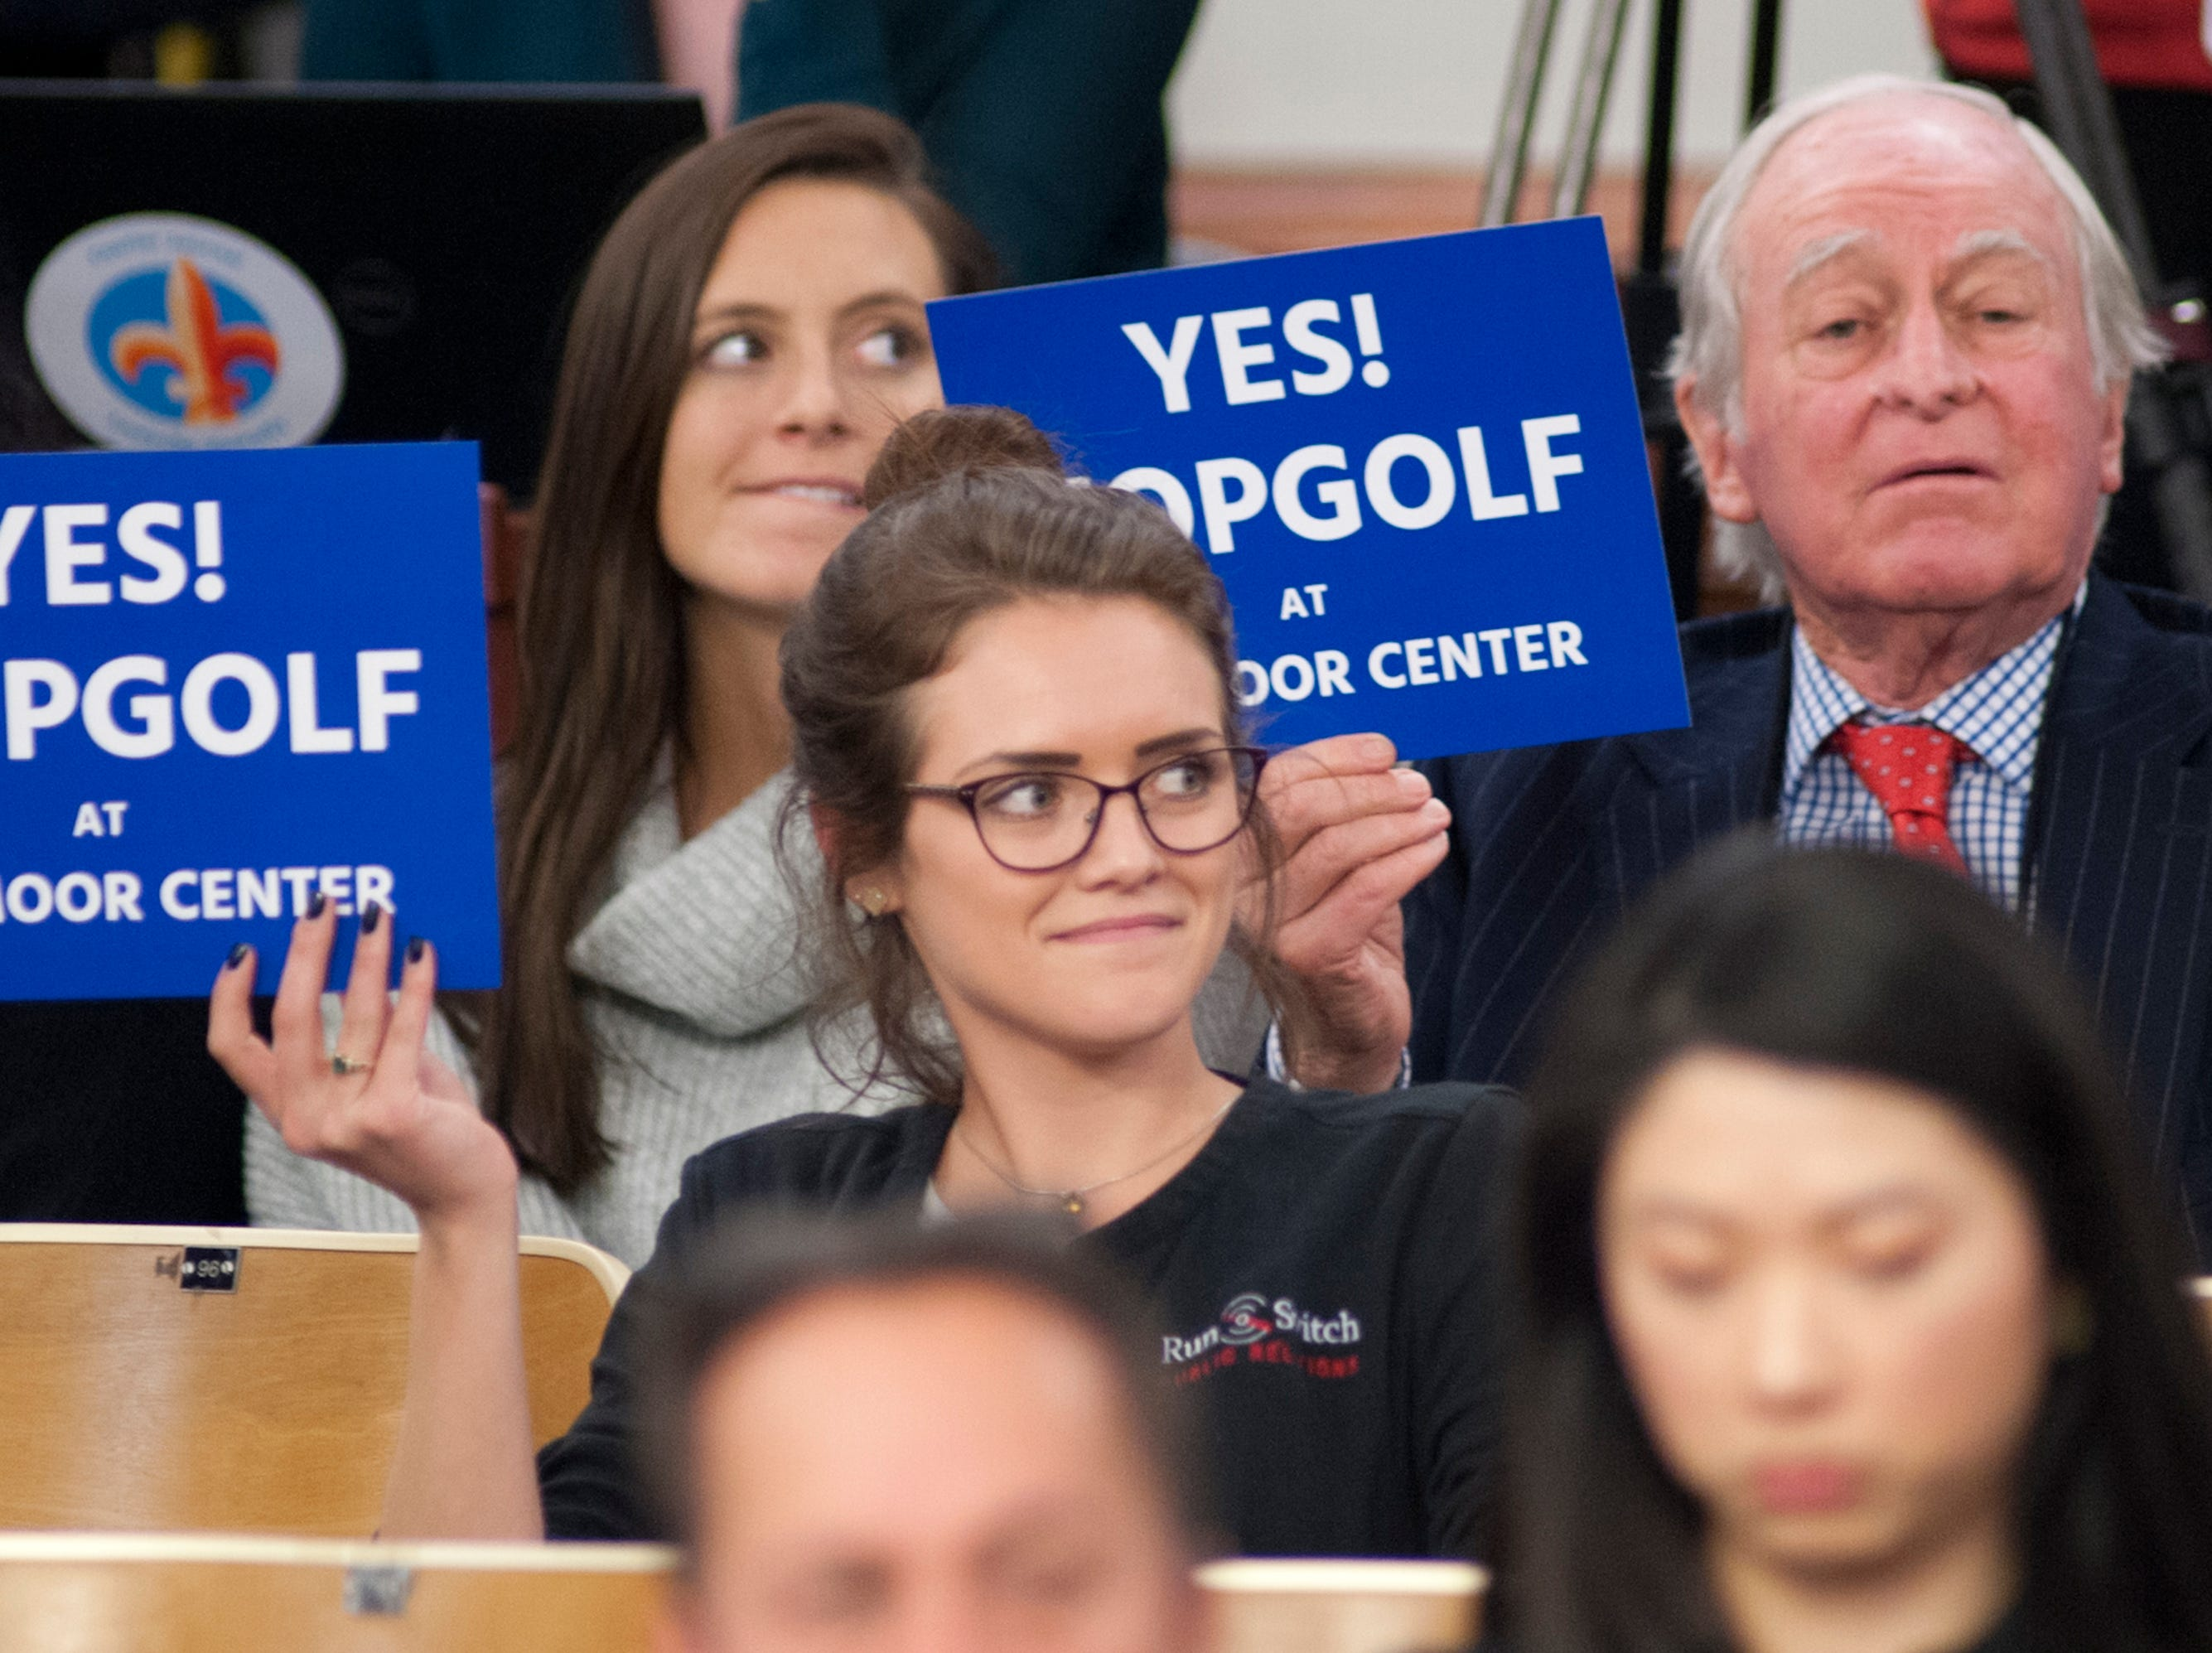 Supporters of Topgolf at Oxmoor Center, including Tia Chancellor, center, account executive for RunSwitch Public Relations, (who represents Topgolf), hold up placards during the debate on approving the planning commission's recommendations on Nov. 29, 2018.